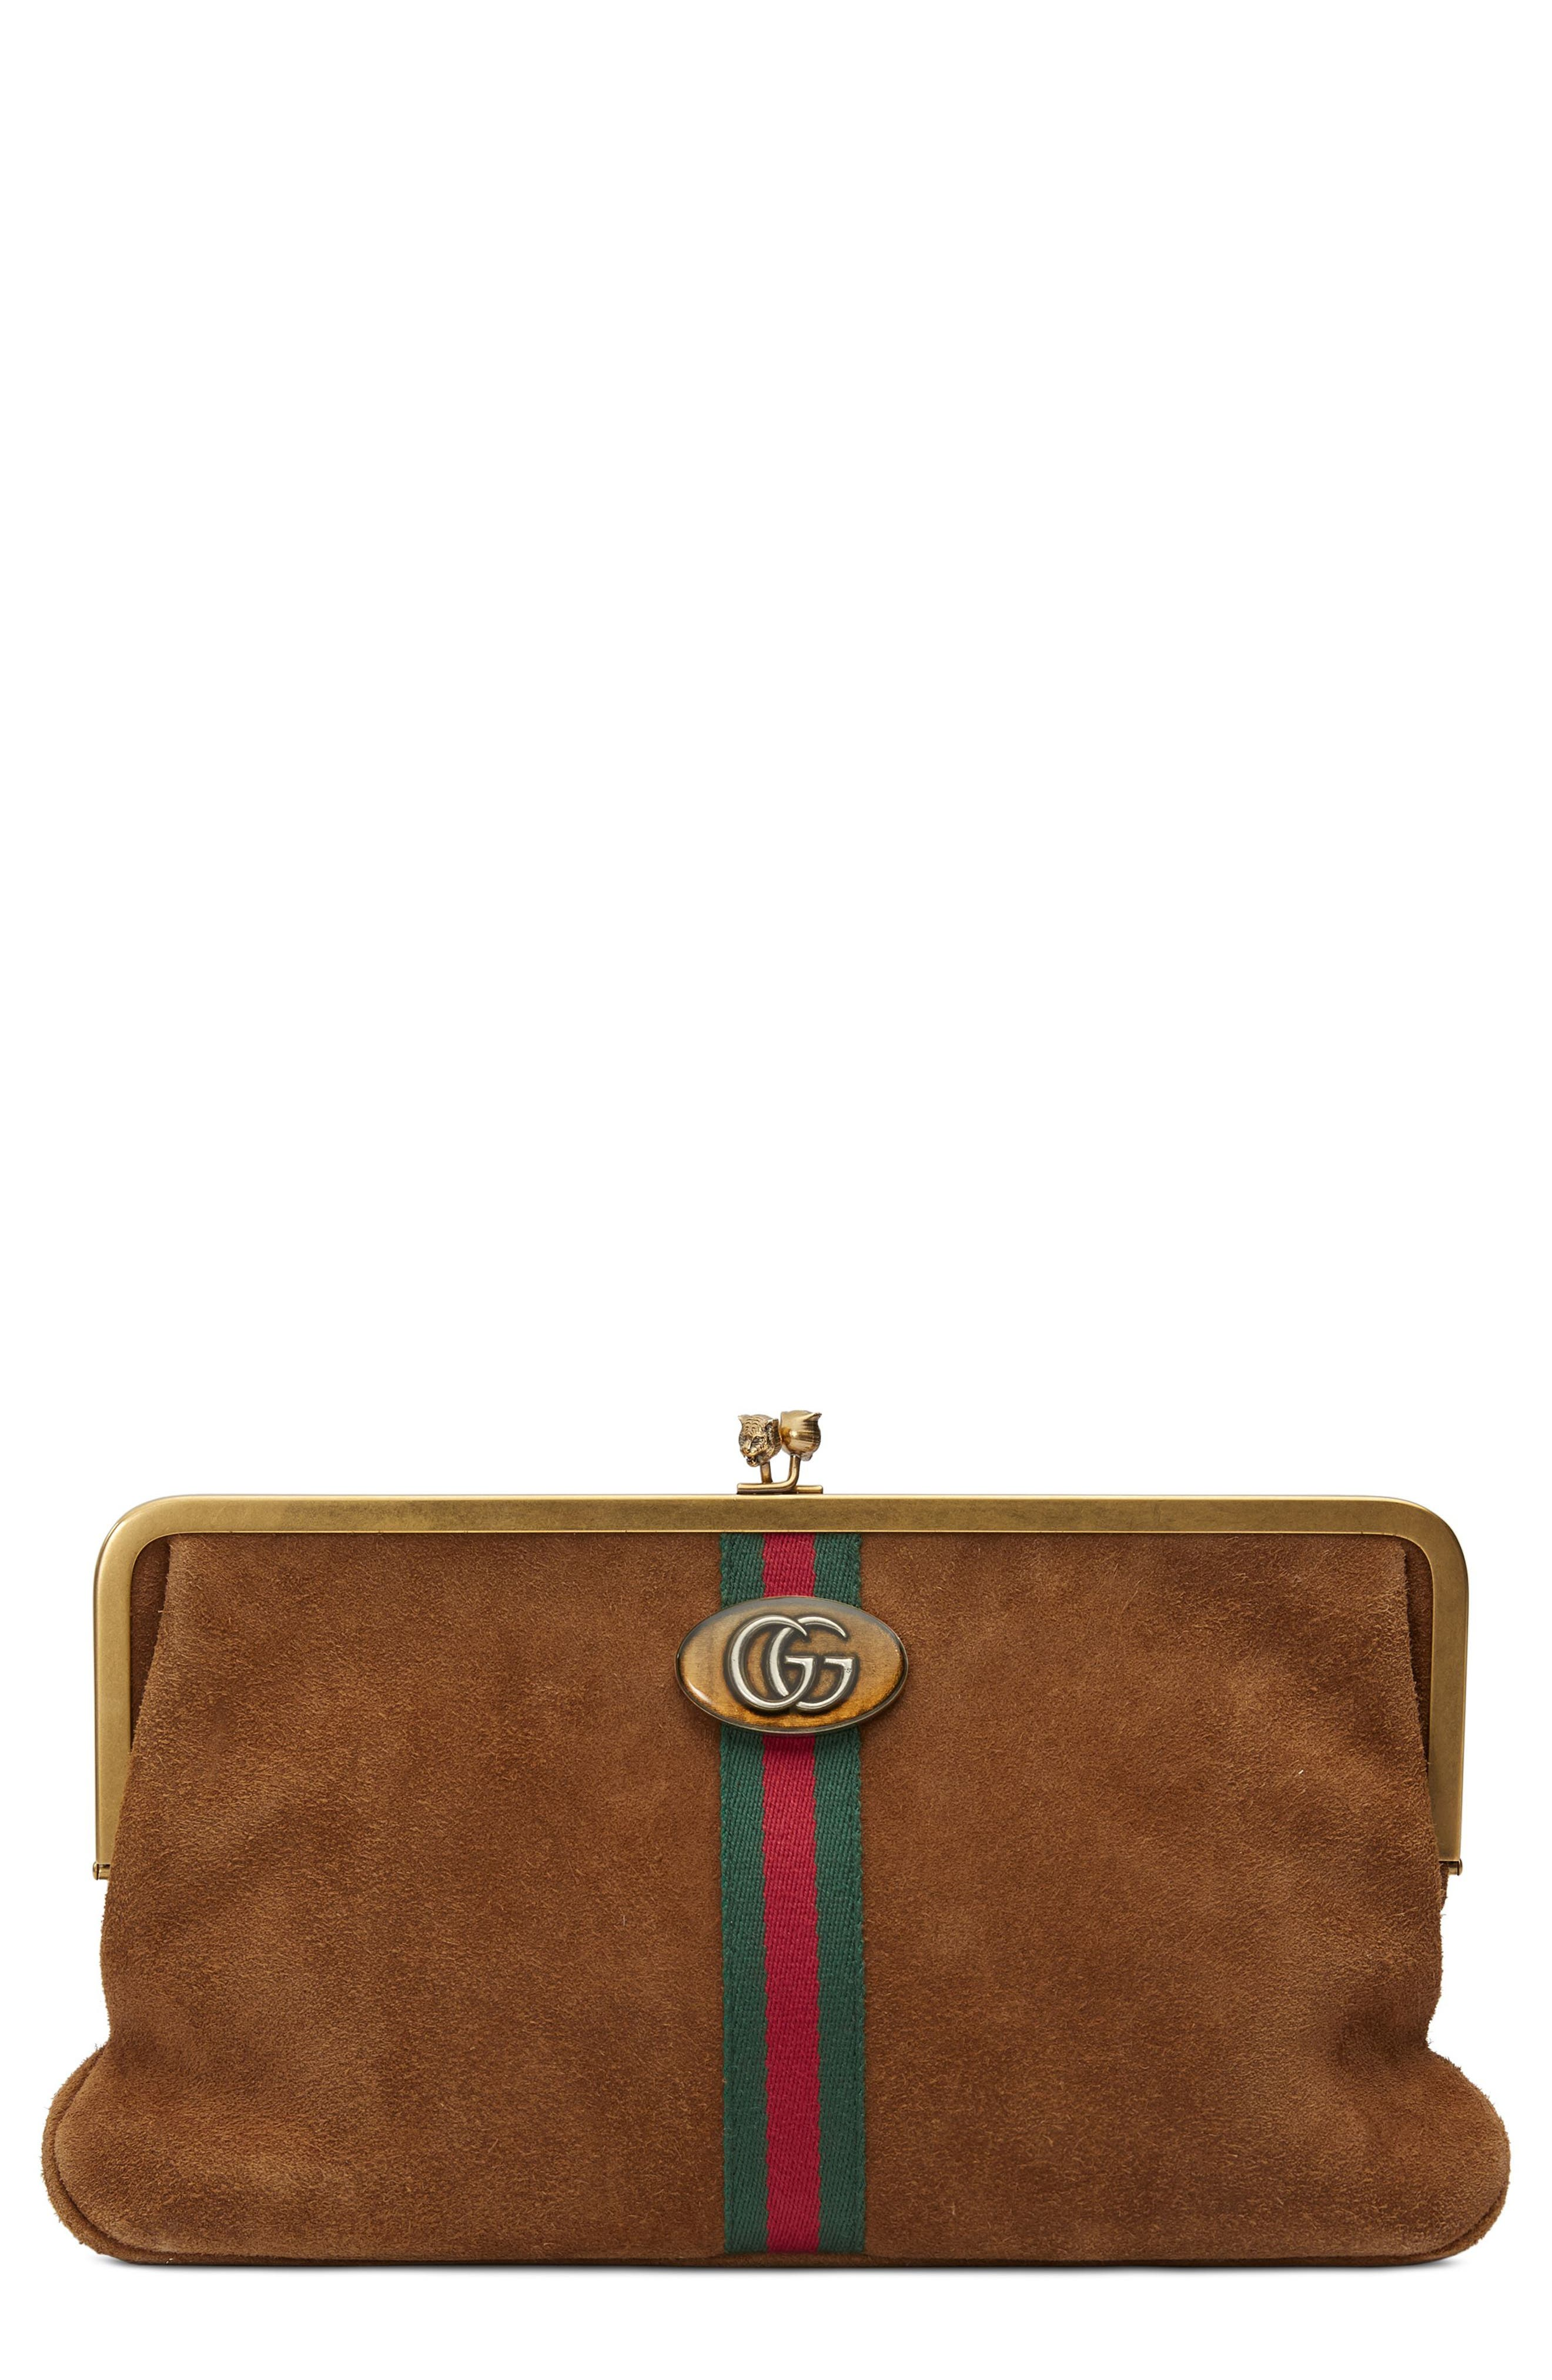 Ophidia Suede Frame Clutch,                             Main thumbnail 1, color,                             200